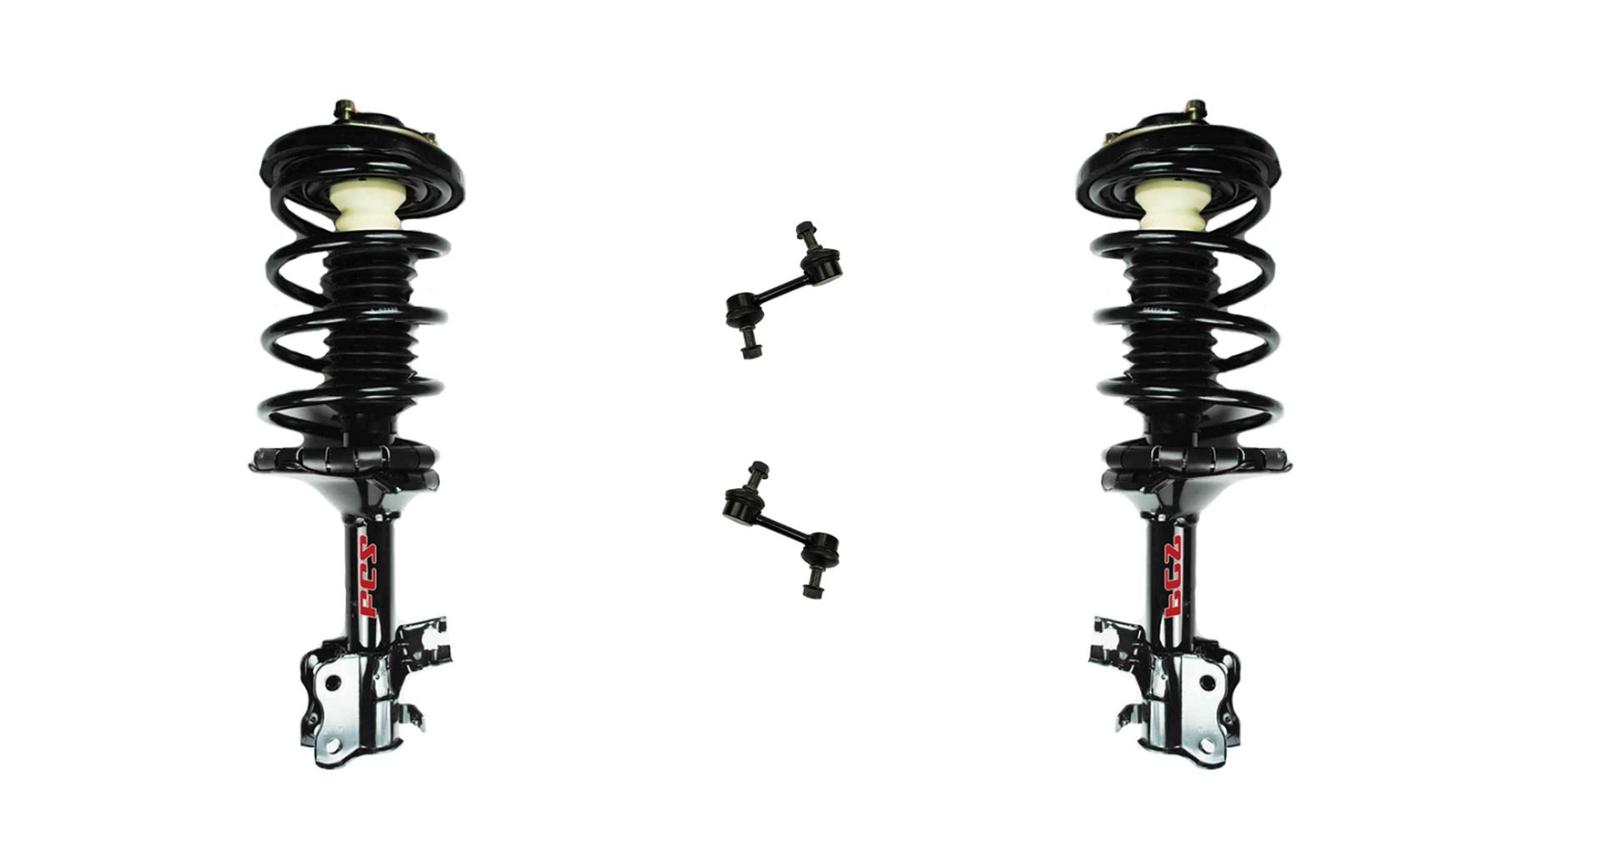 06-09 Fusion Milan 2.3L FWD (2) Front Quick Spring Strut